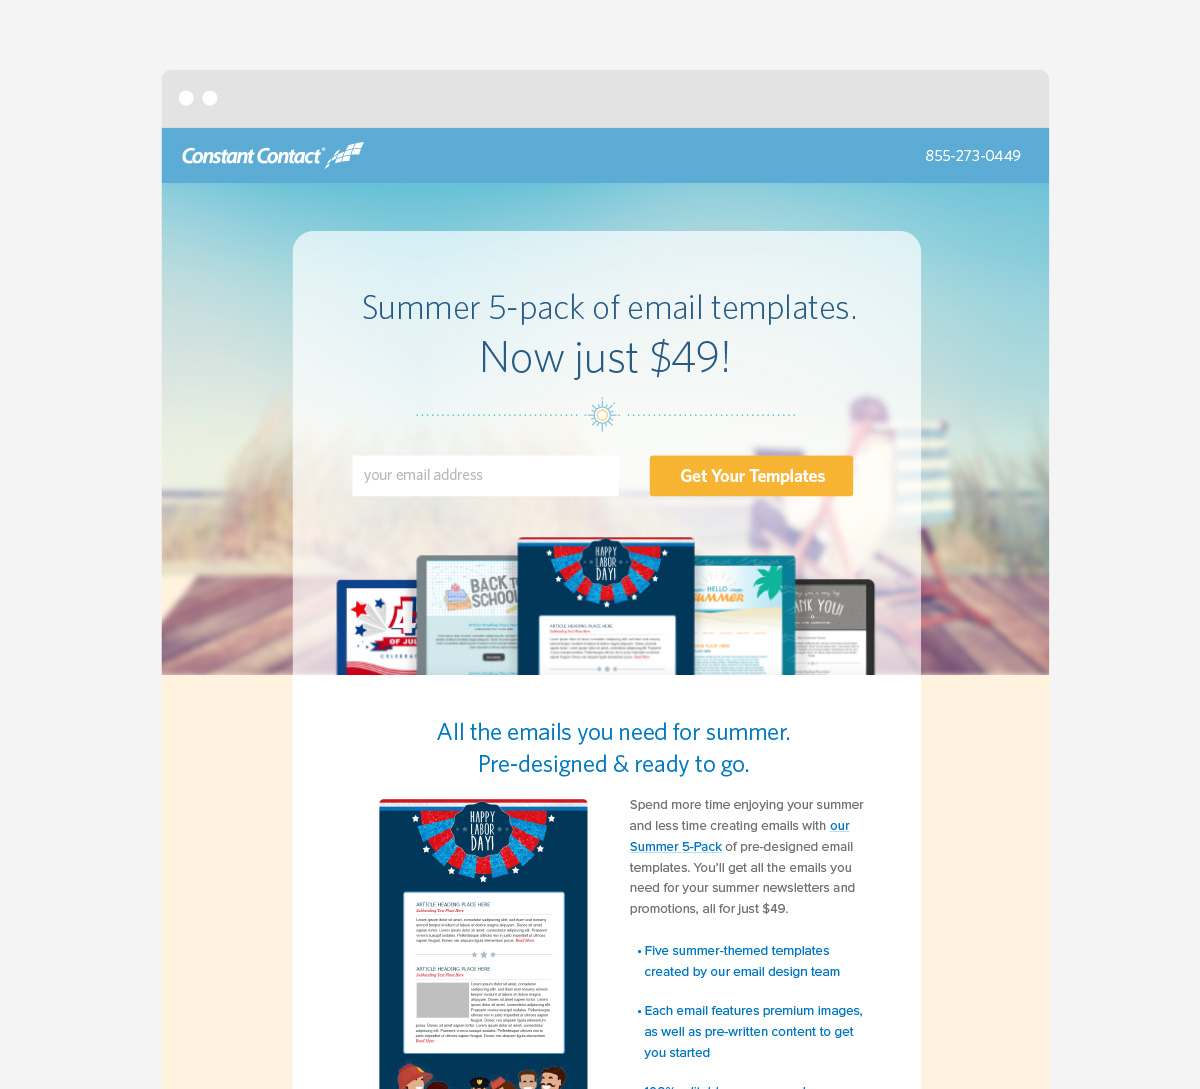 Responsive Email Landing Page Design